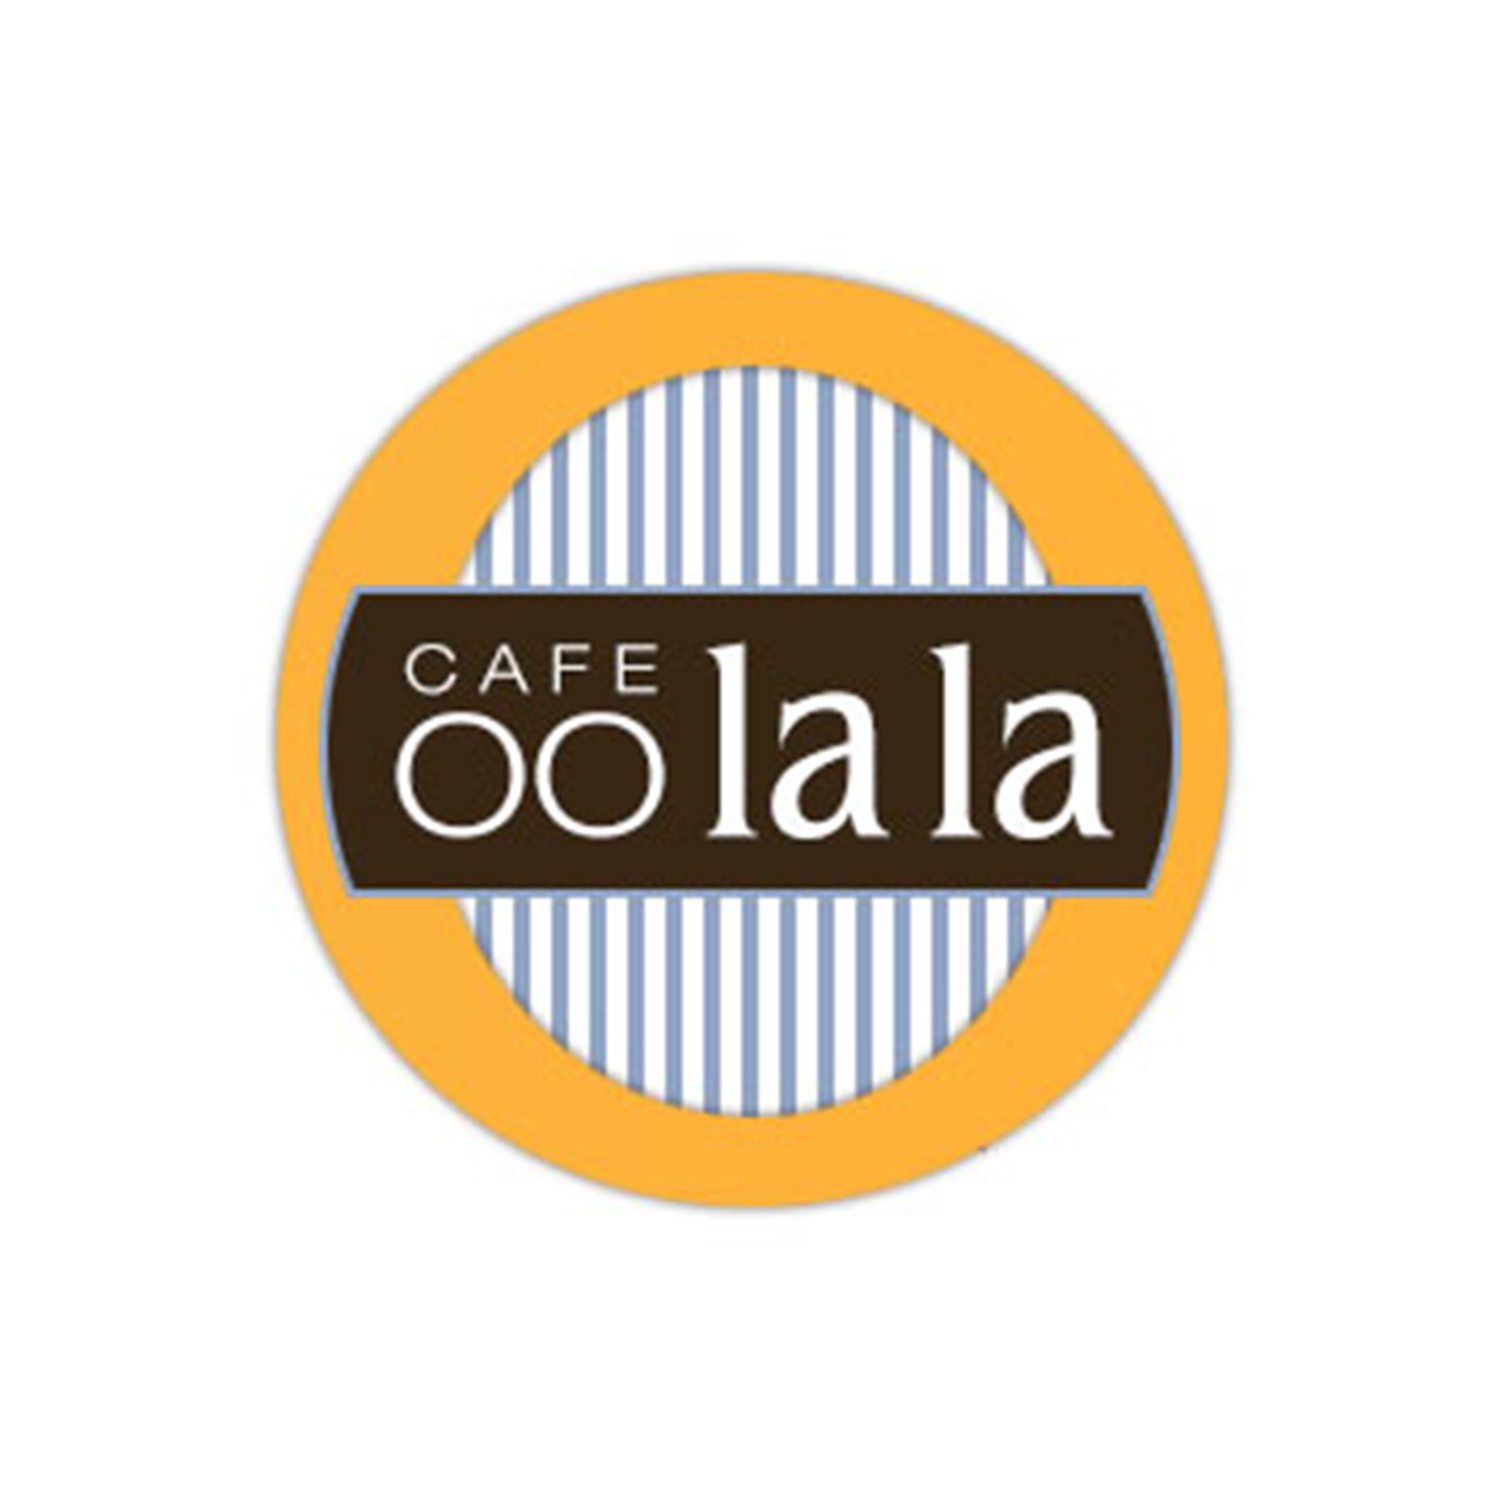 Cafe Oo LALA : has it all. We combine classic American and European flavors, with a modern twist, to create a menu of crowd-pleasing favorites.